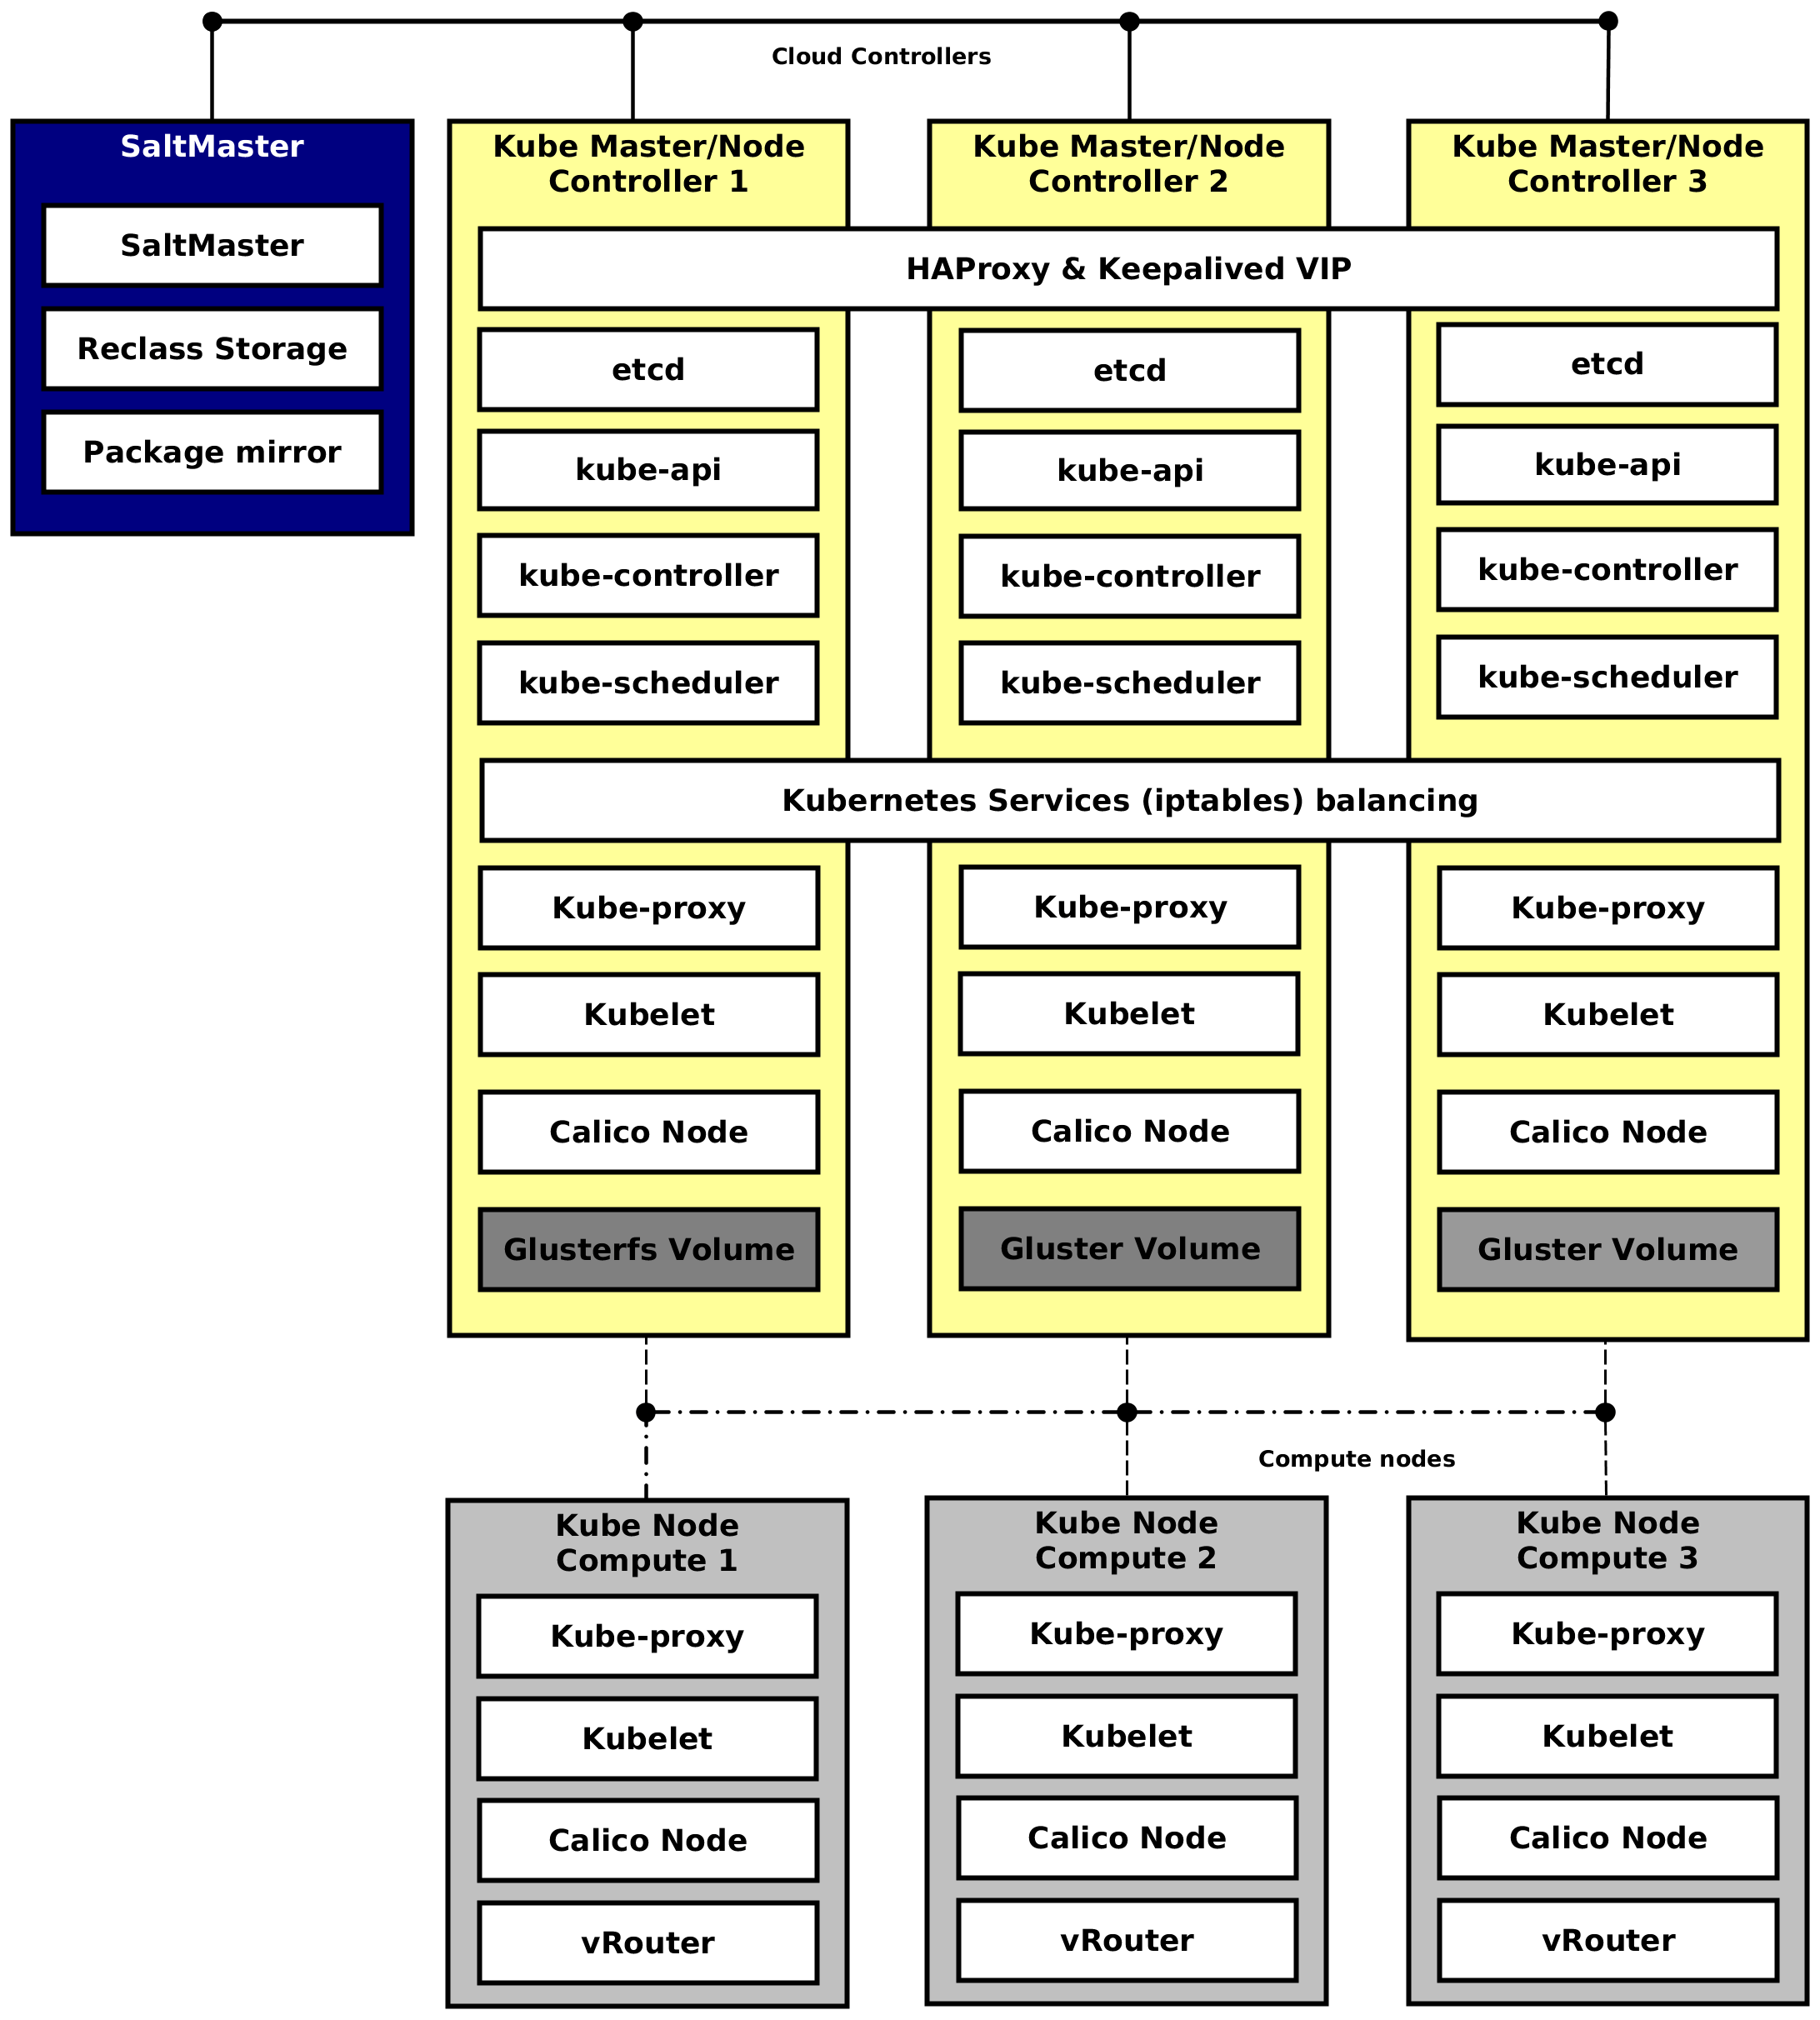 Making OpenStack Production Ready with Kubernetes and OpenStack-Salt